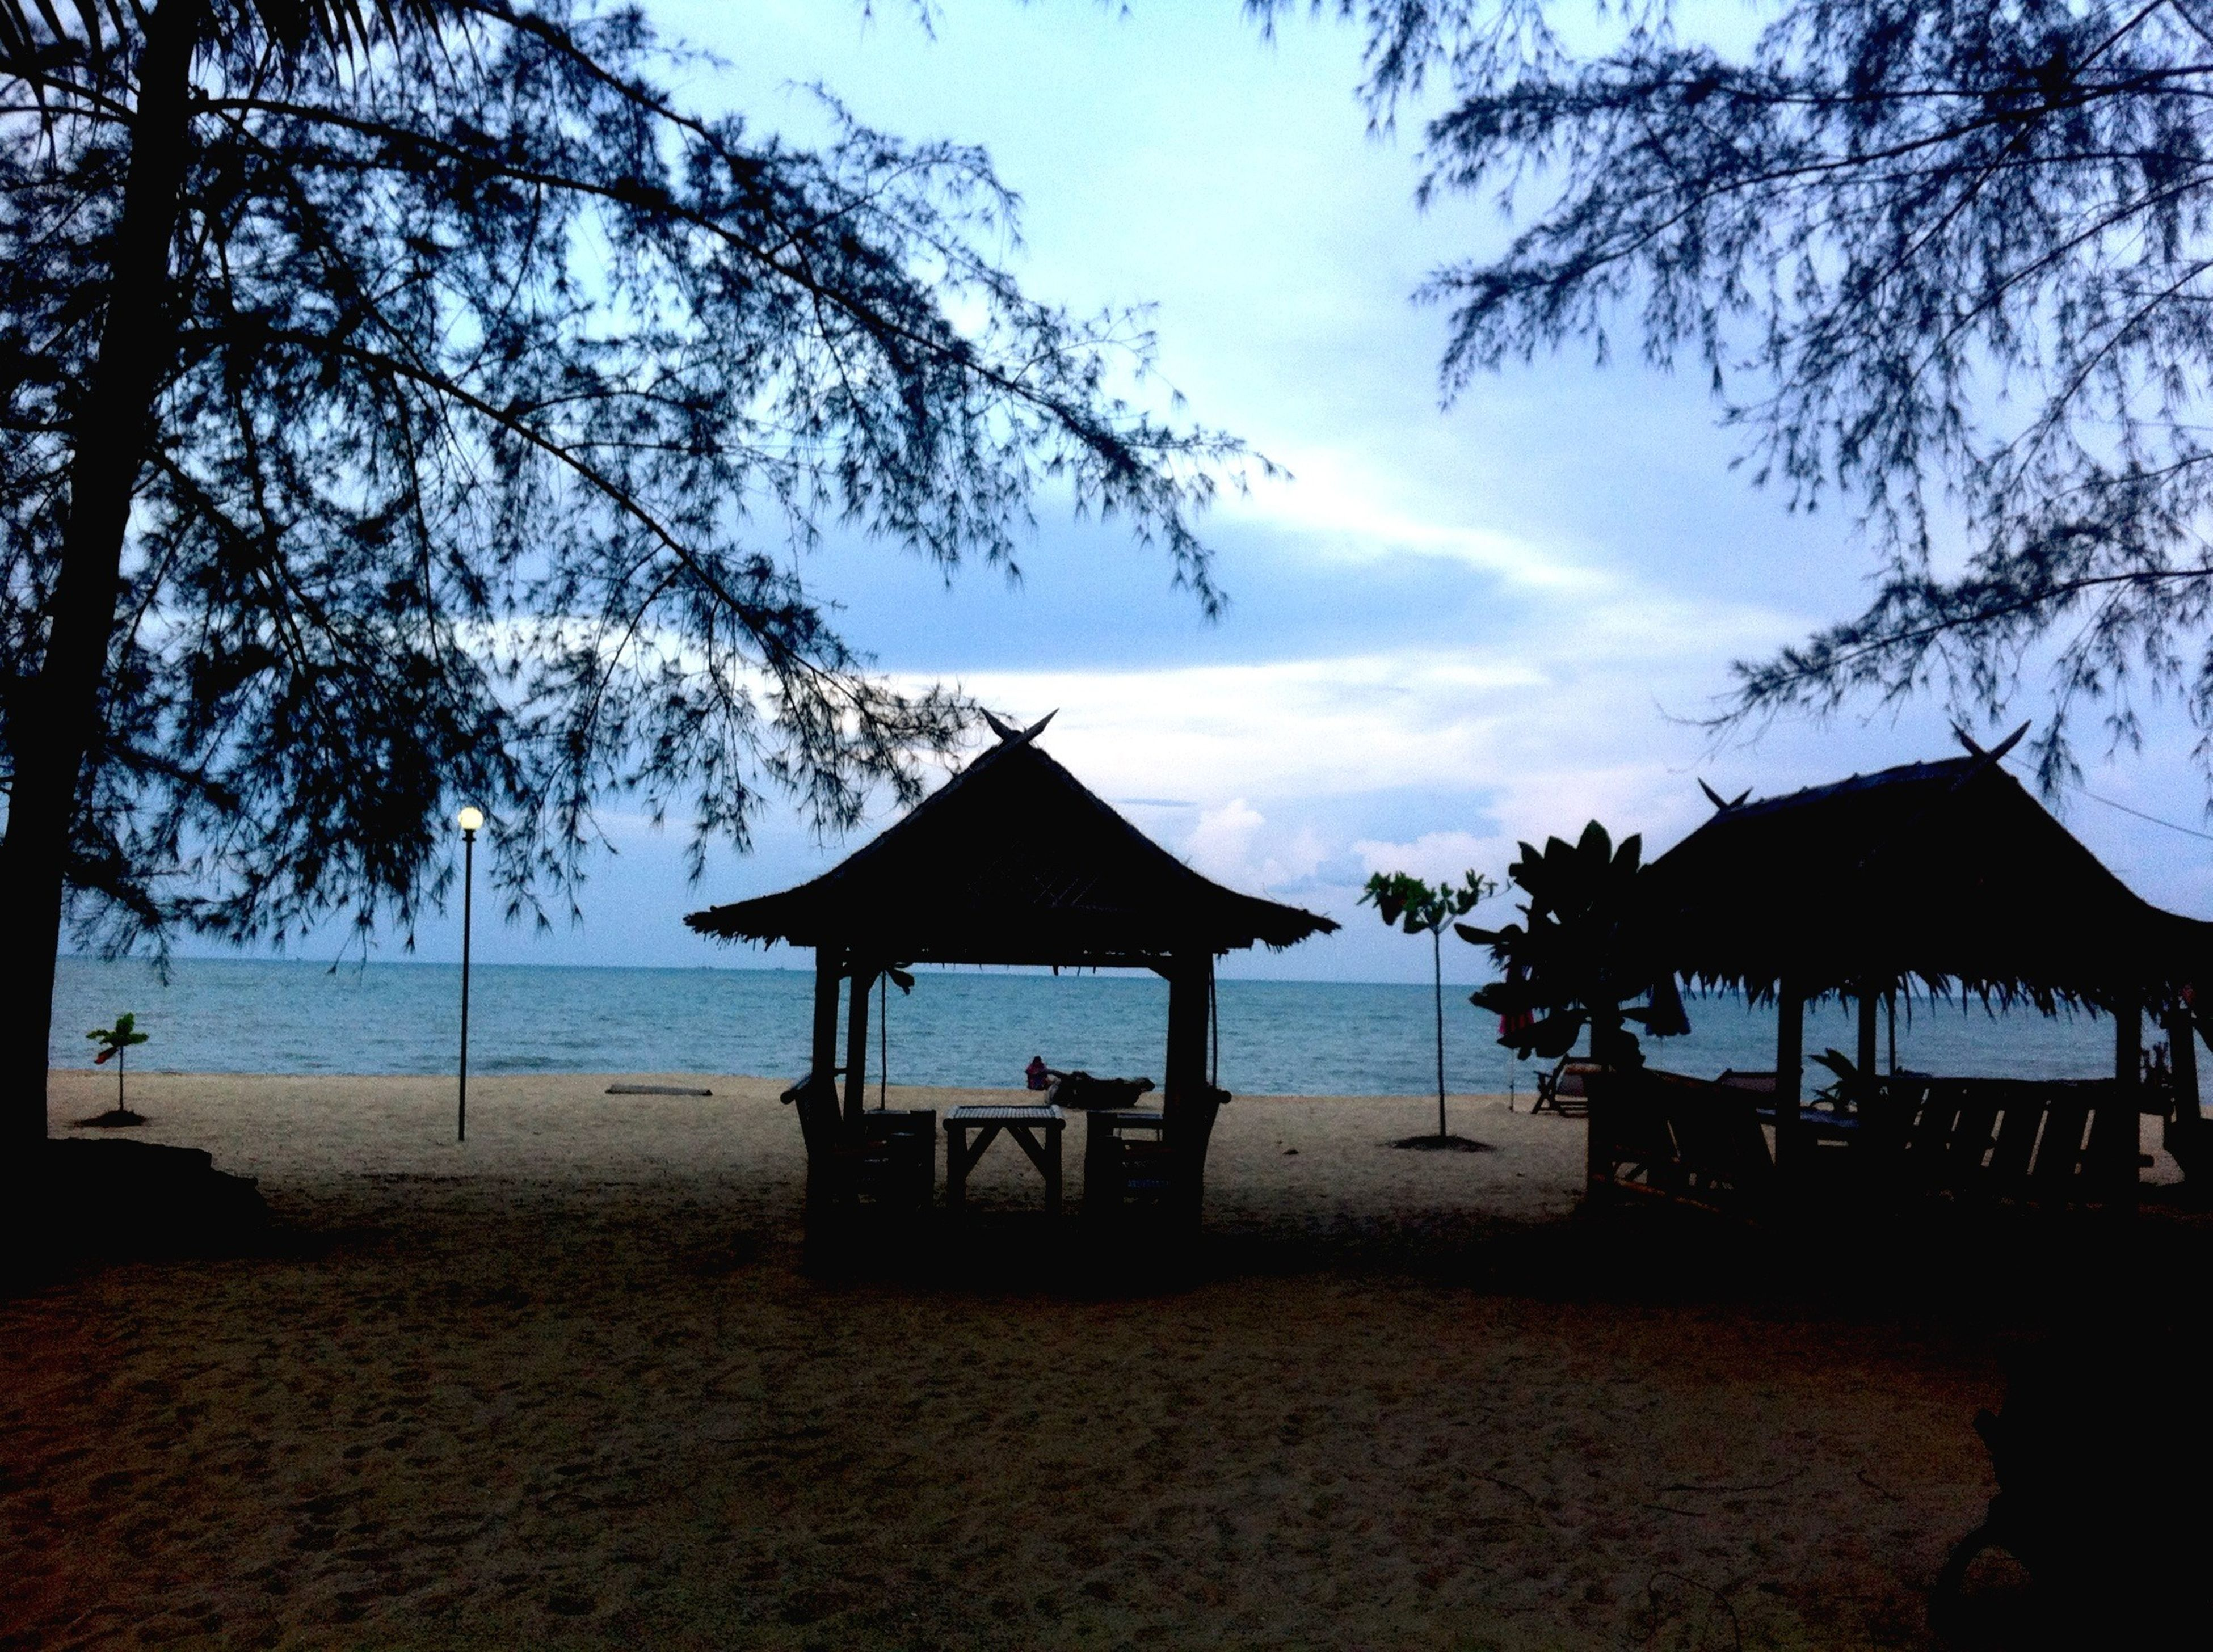 beach, sea, water, sand, tranquil scene, tranquility, tree, shore, horizon over water, sky, scenics, beauty in nature, nature, vacations, idyllic, relaxation, absence, thatched roof, incidental people, tourism